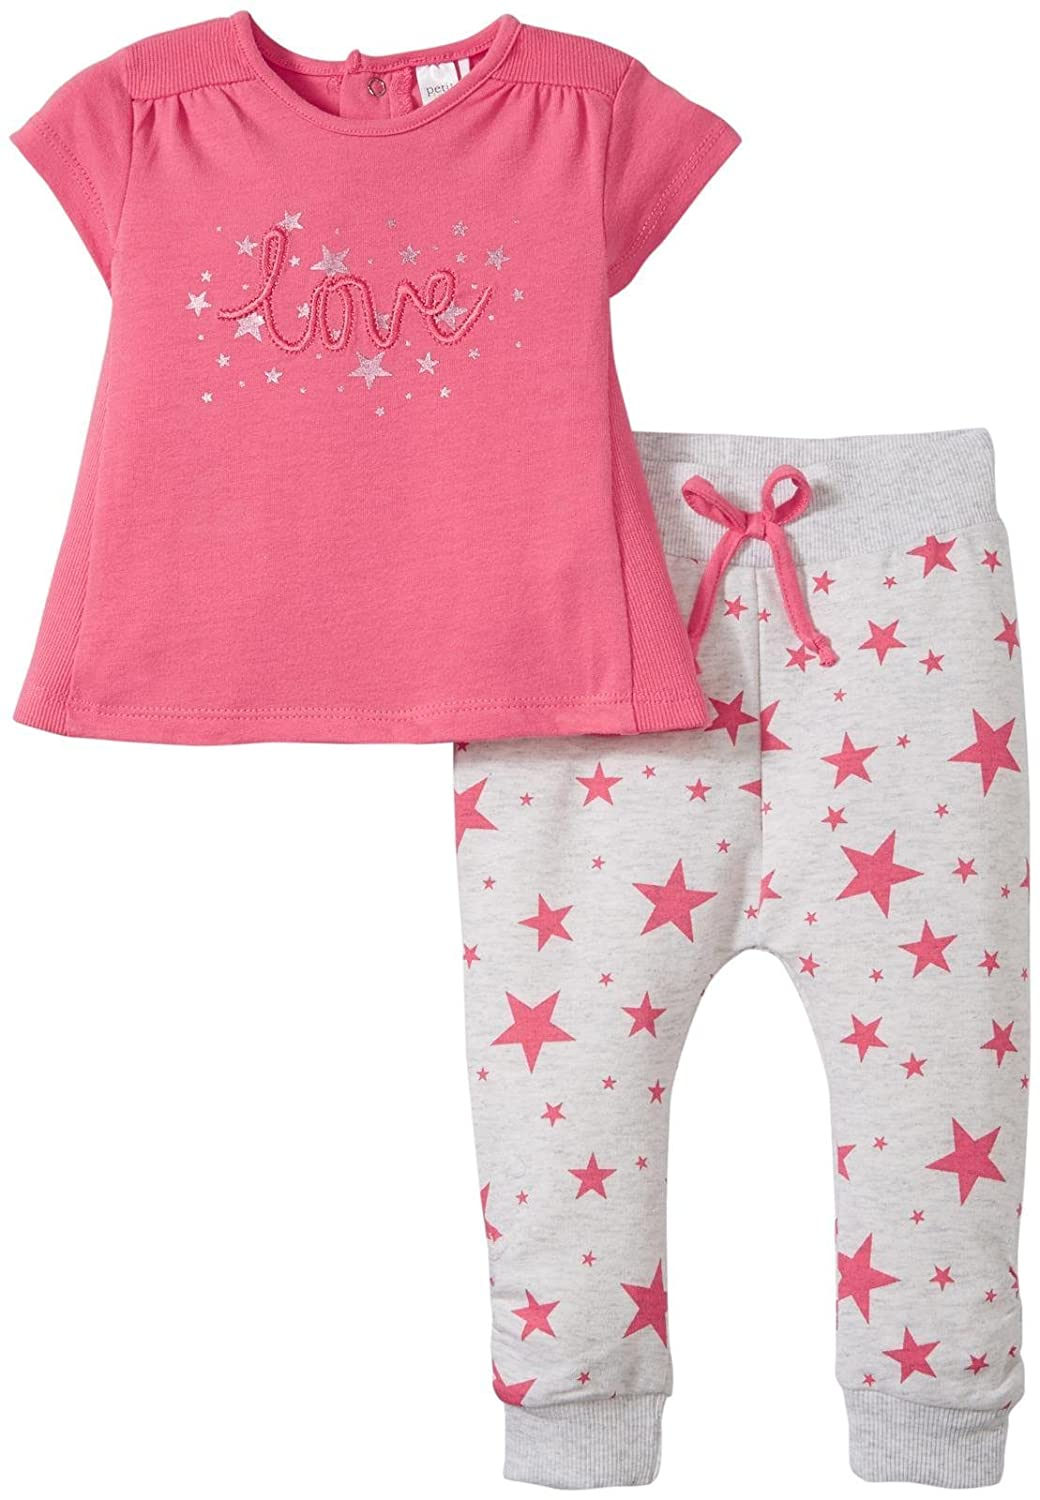 見事な Petit B01951U2XO Lem XL Little Star 2ピースセット( Lem Baby ) XL ピンク/グレー B01951U2XO, 仏壇仏具の江原佛具店 総本店:bb1fdcb9 --- trainersnit-com.access.secure-ssl-servers.info